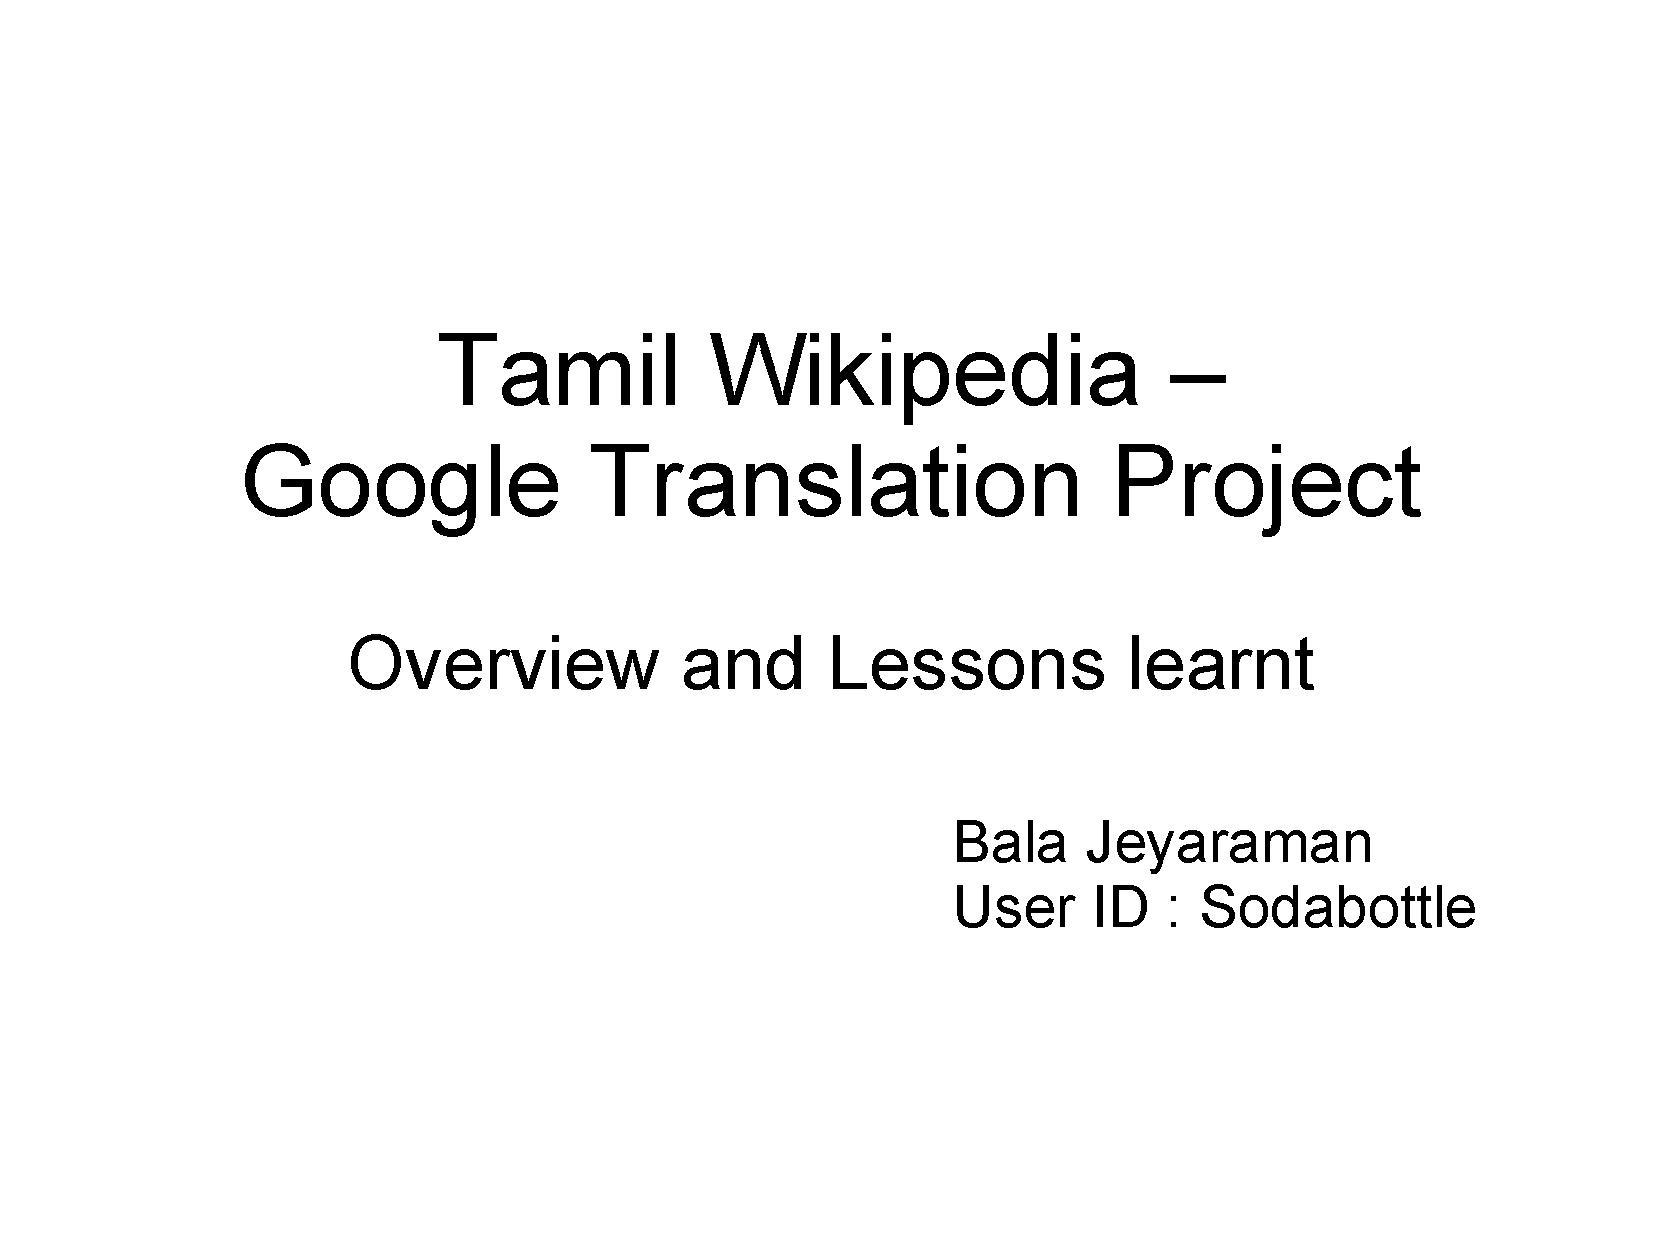 filegoogle translation project tamil wikipediapdf